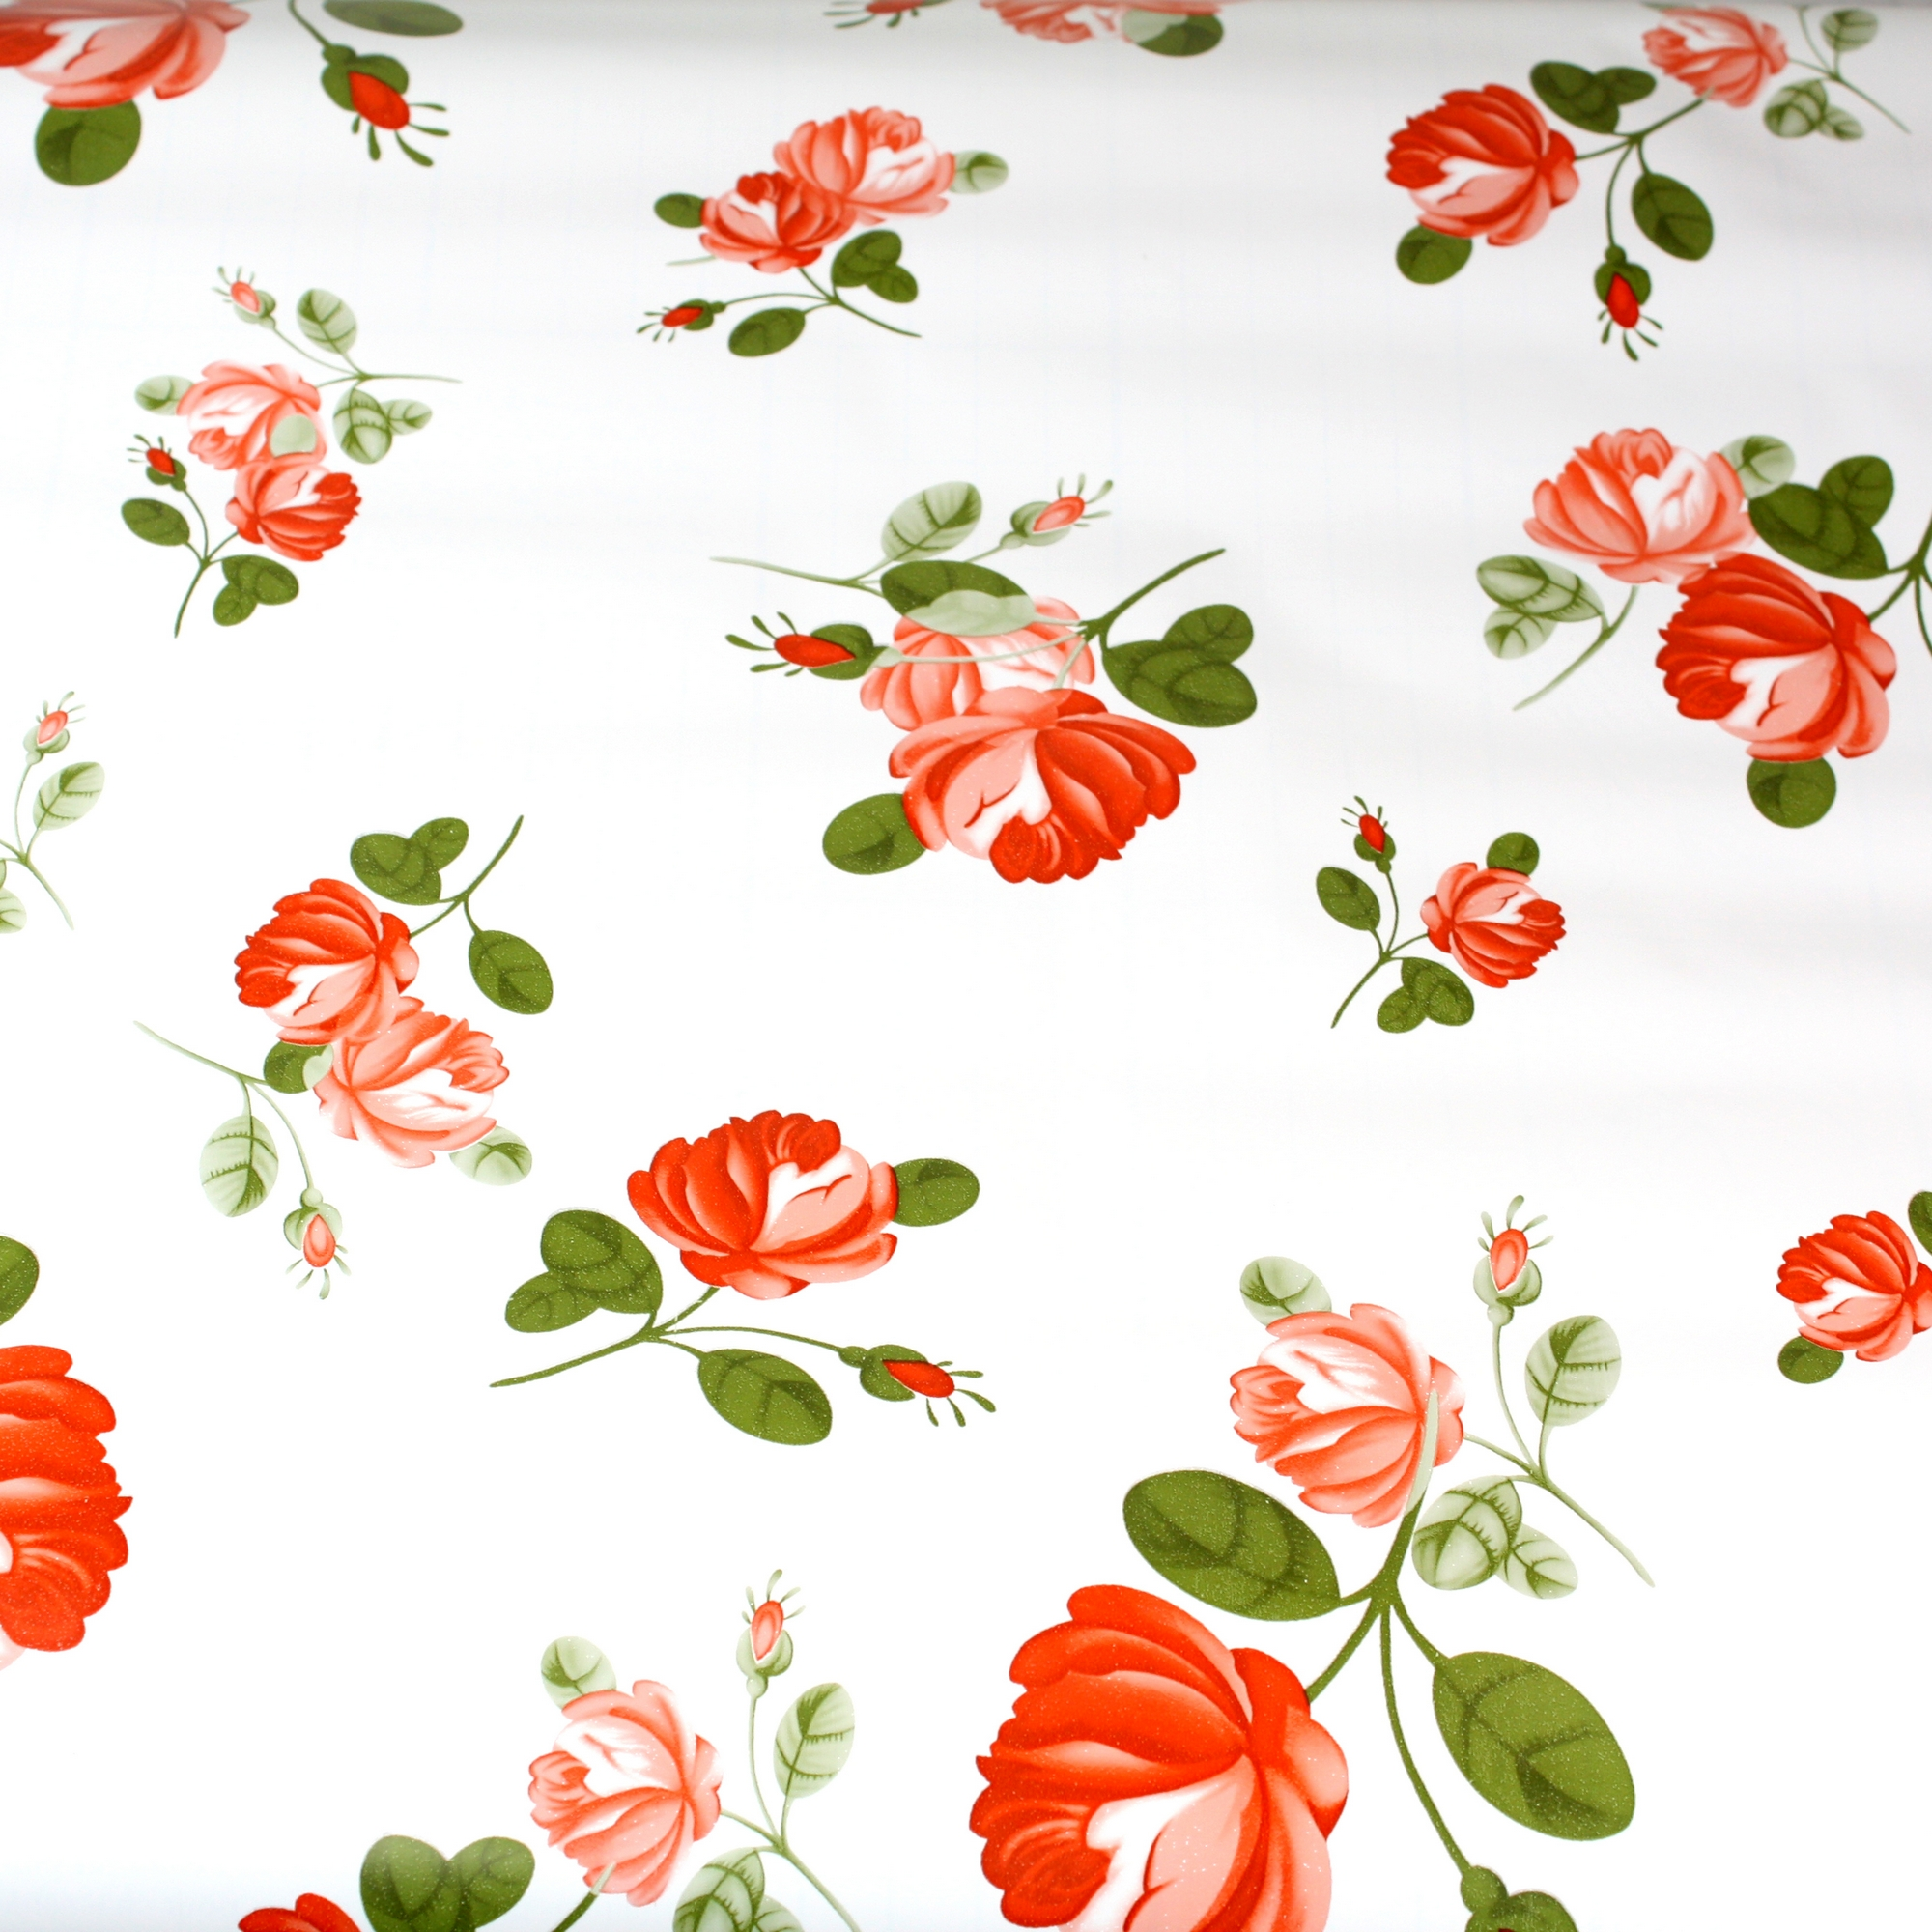 Red rose self adhesive decorative vinyl 45cm x 120cm for Rose adesive